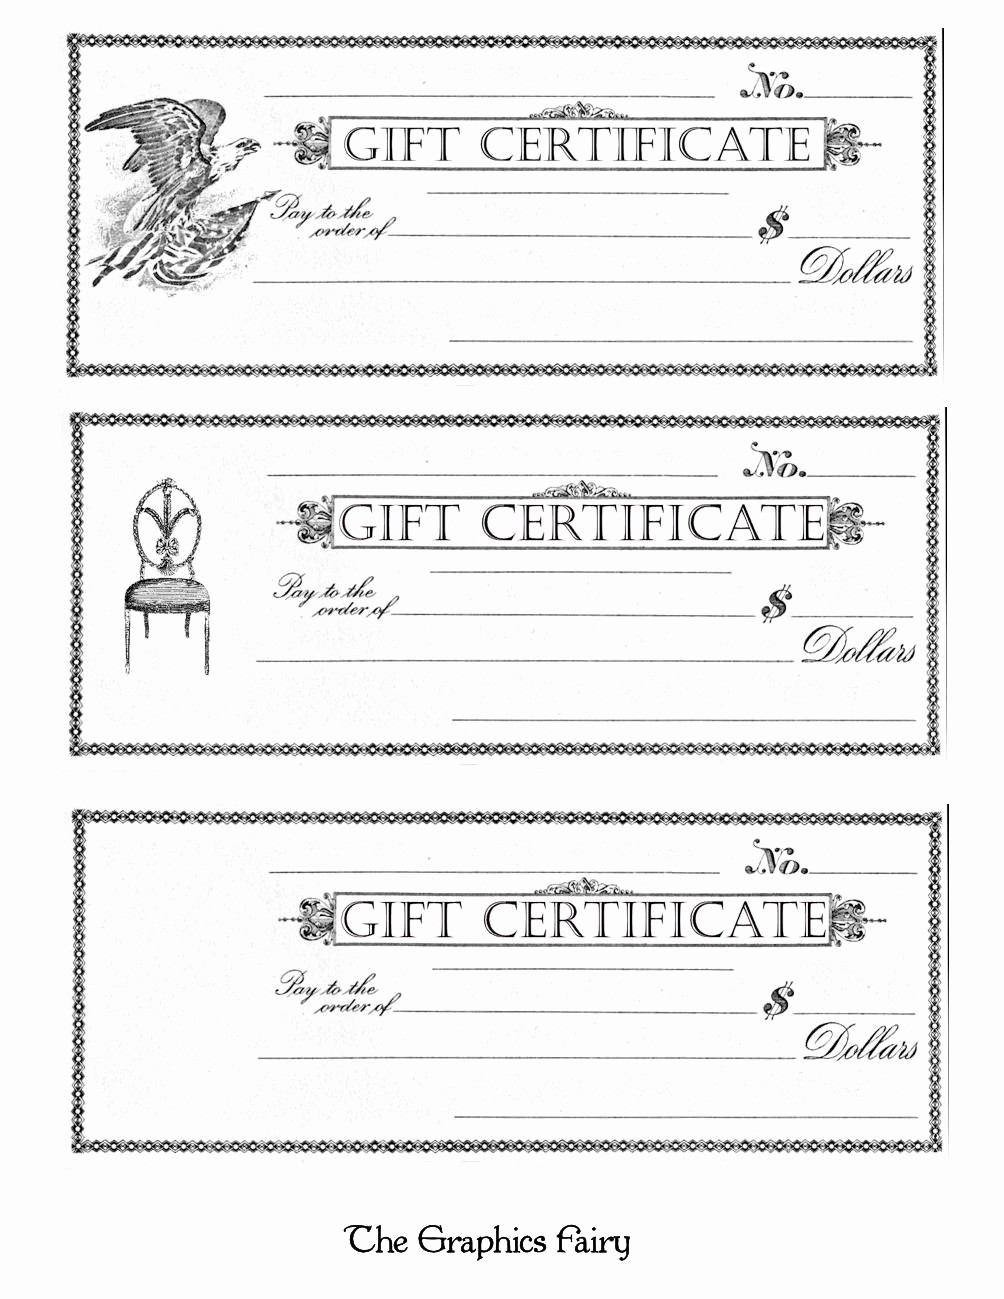 Printable Gift Certificates Online Free Best Of Free Printable Gift Certificates the Graphics Fairy